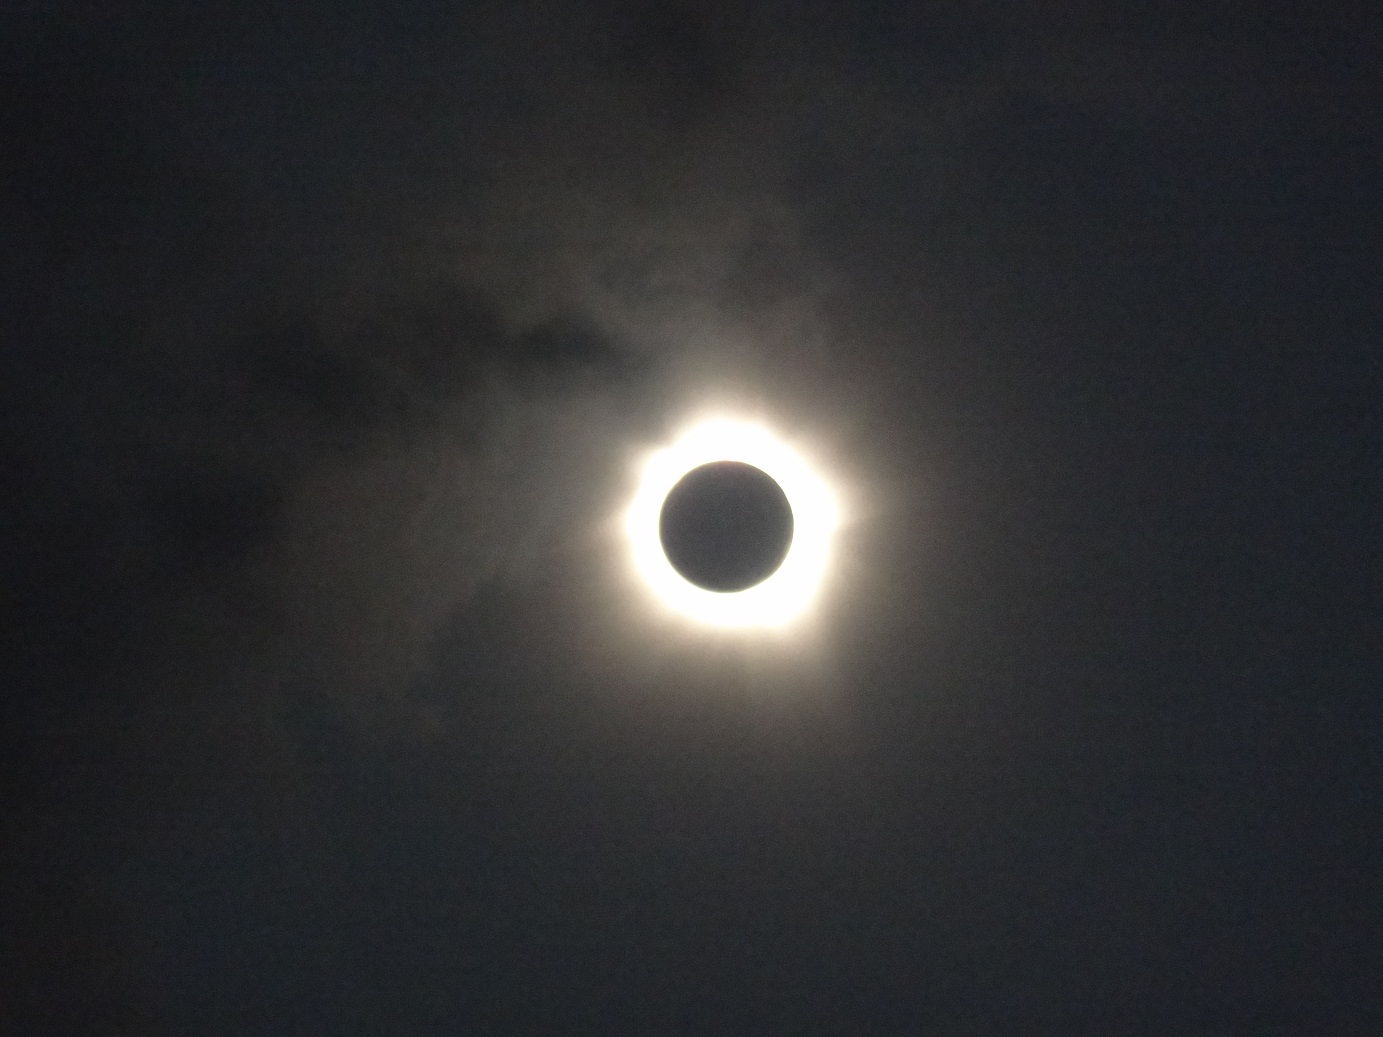 Eclipse Seen Over Cairns, Australia